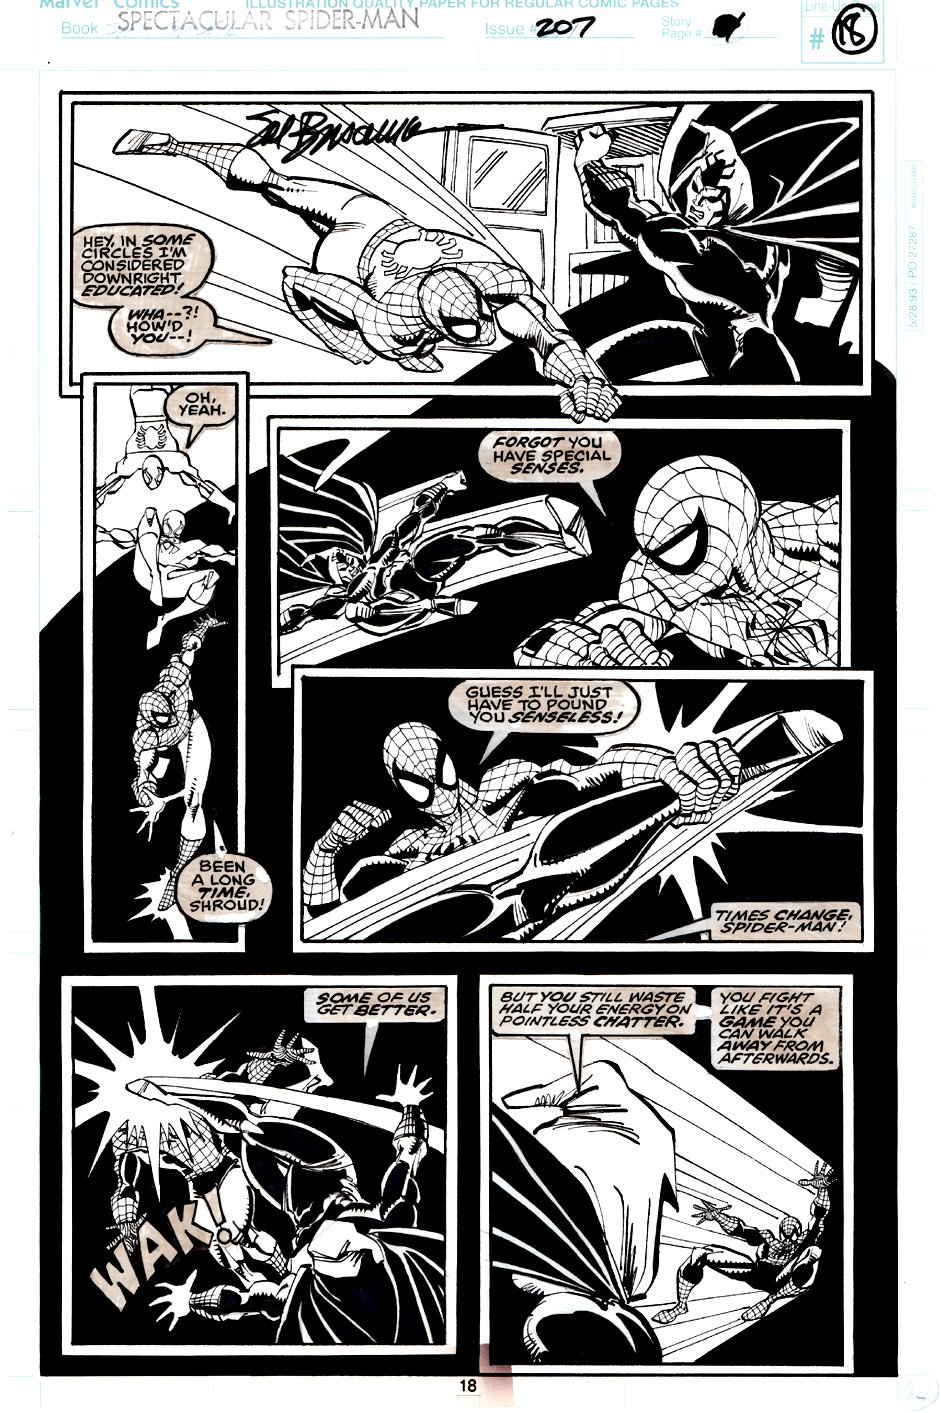 Spectacular Spider-Man #207 p 18 (Spider-Man Battles The Shroud In EVERY PANEL!) 1993